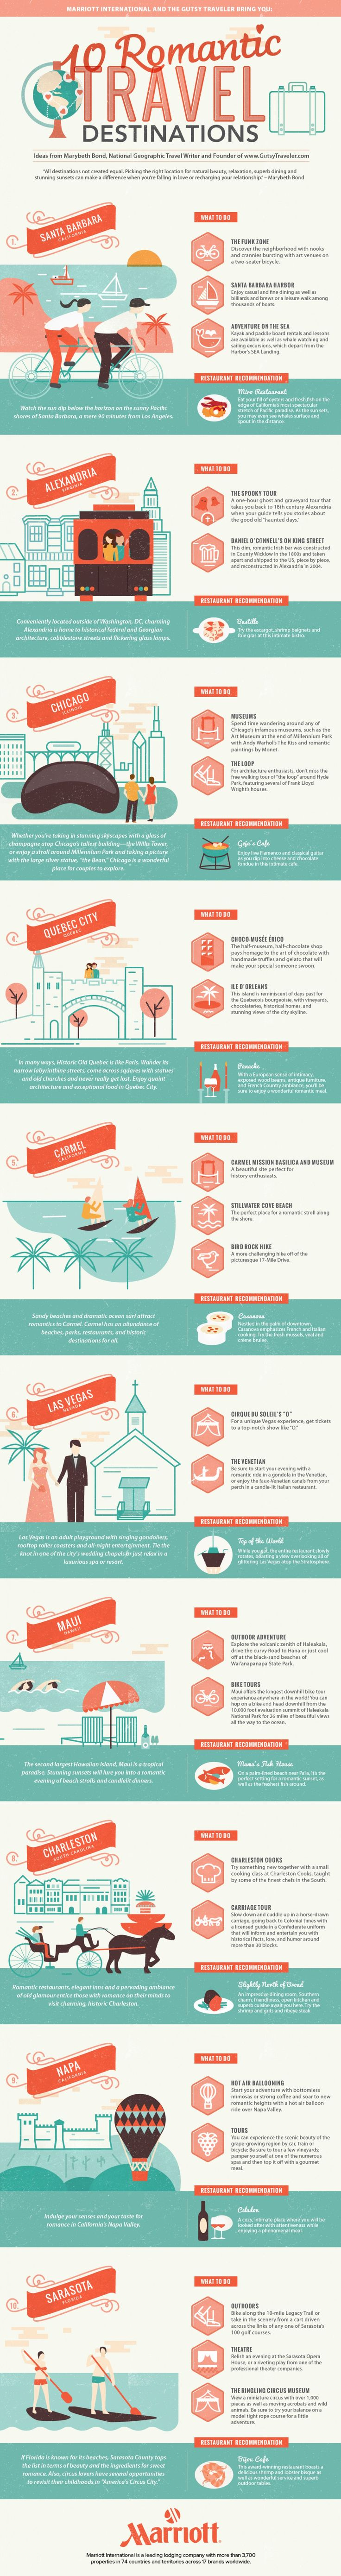 Top 10 Romantic Hotels in the World Sarasota made the list! Ten Romantic Travel Destinations #Infographic #infografía